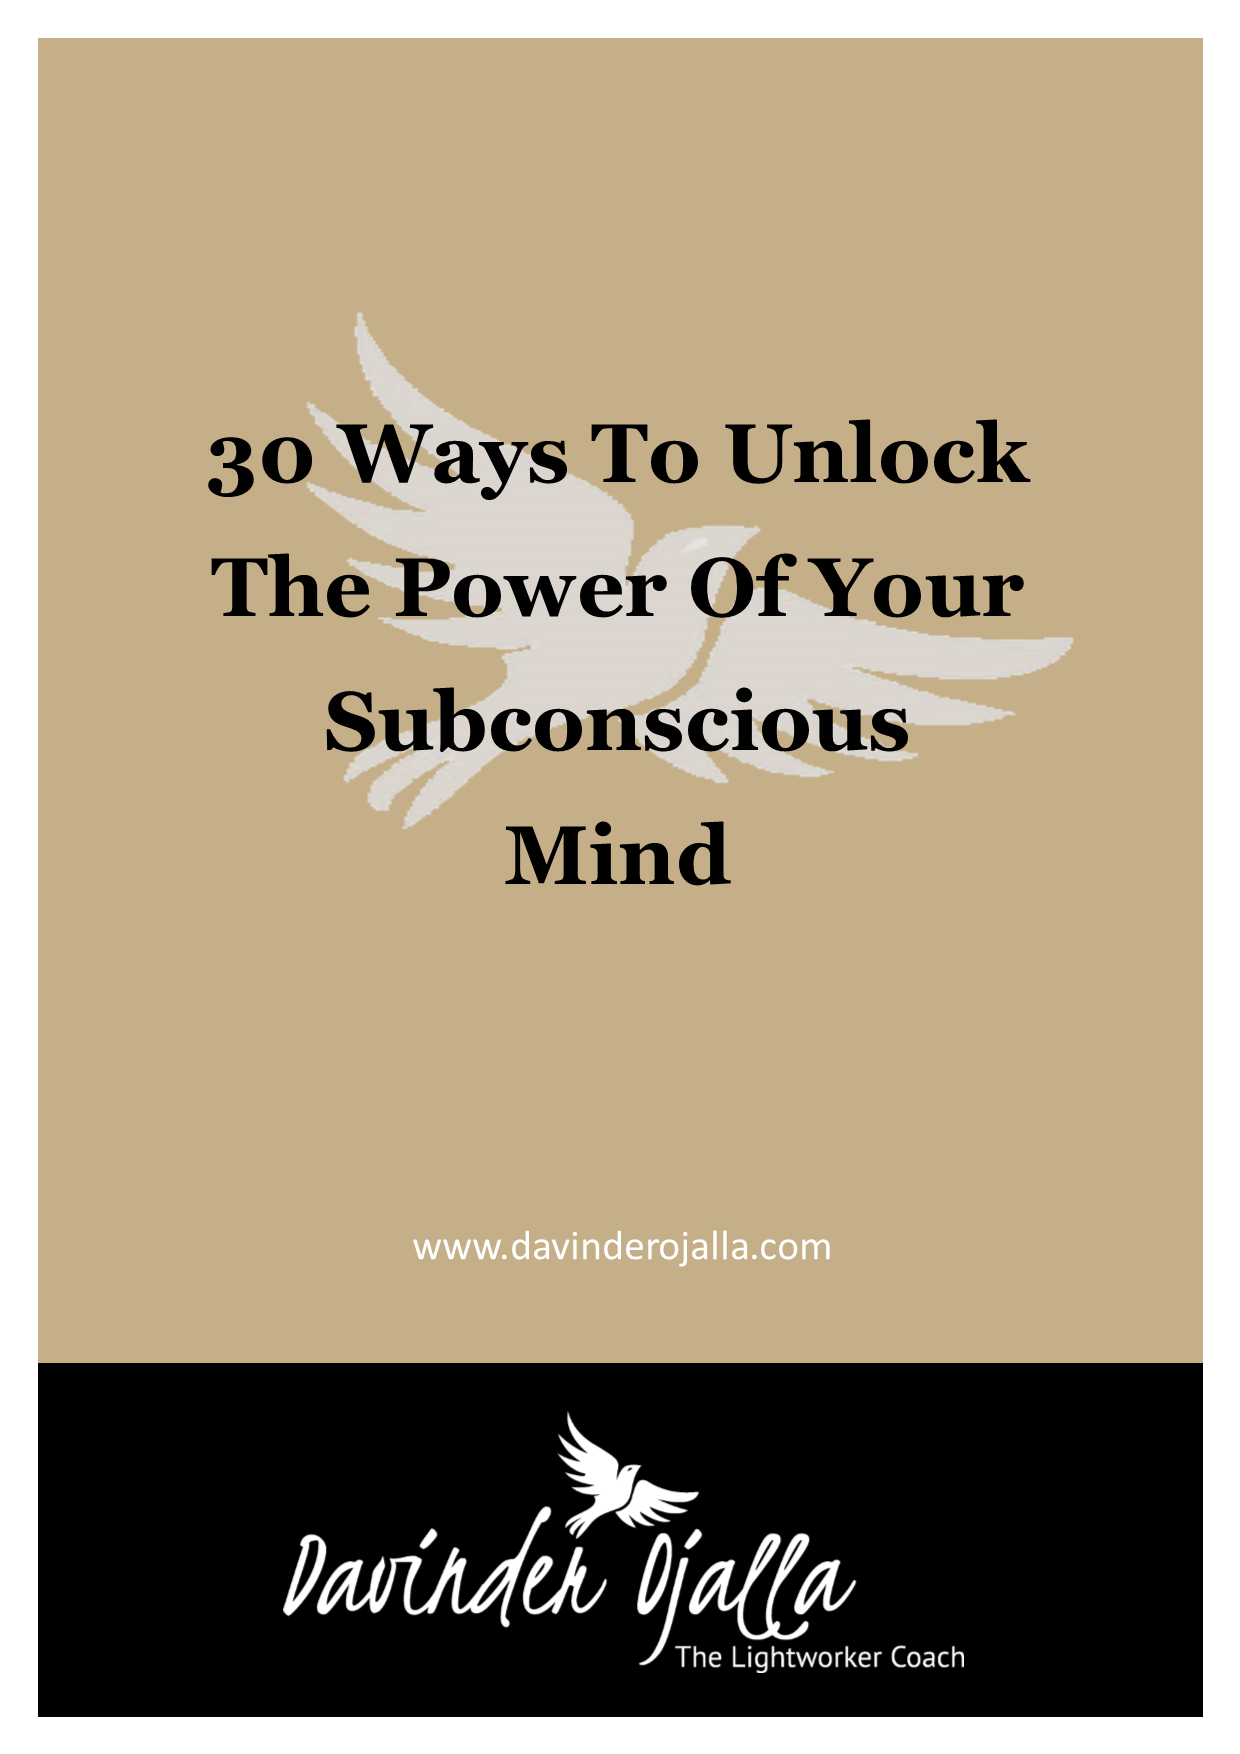 30 Ways To Unlock The Power Of Your Subconscious Mind